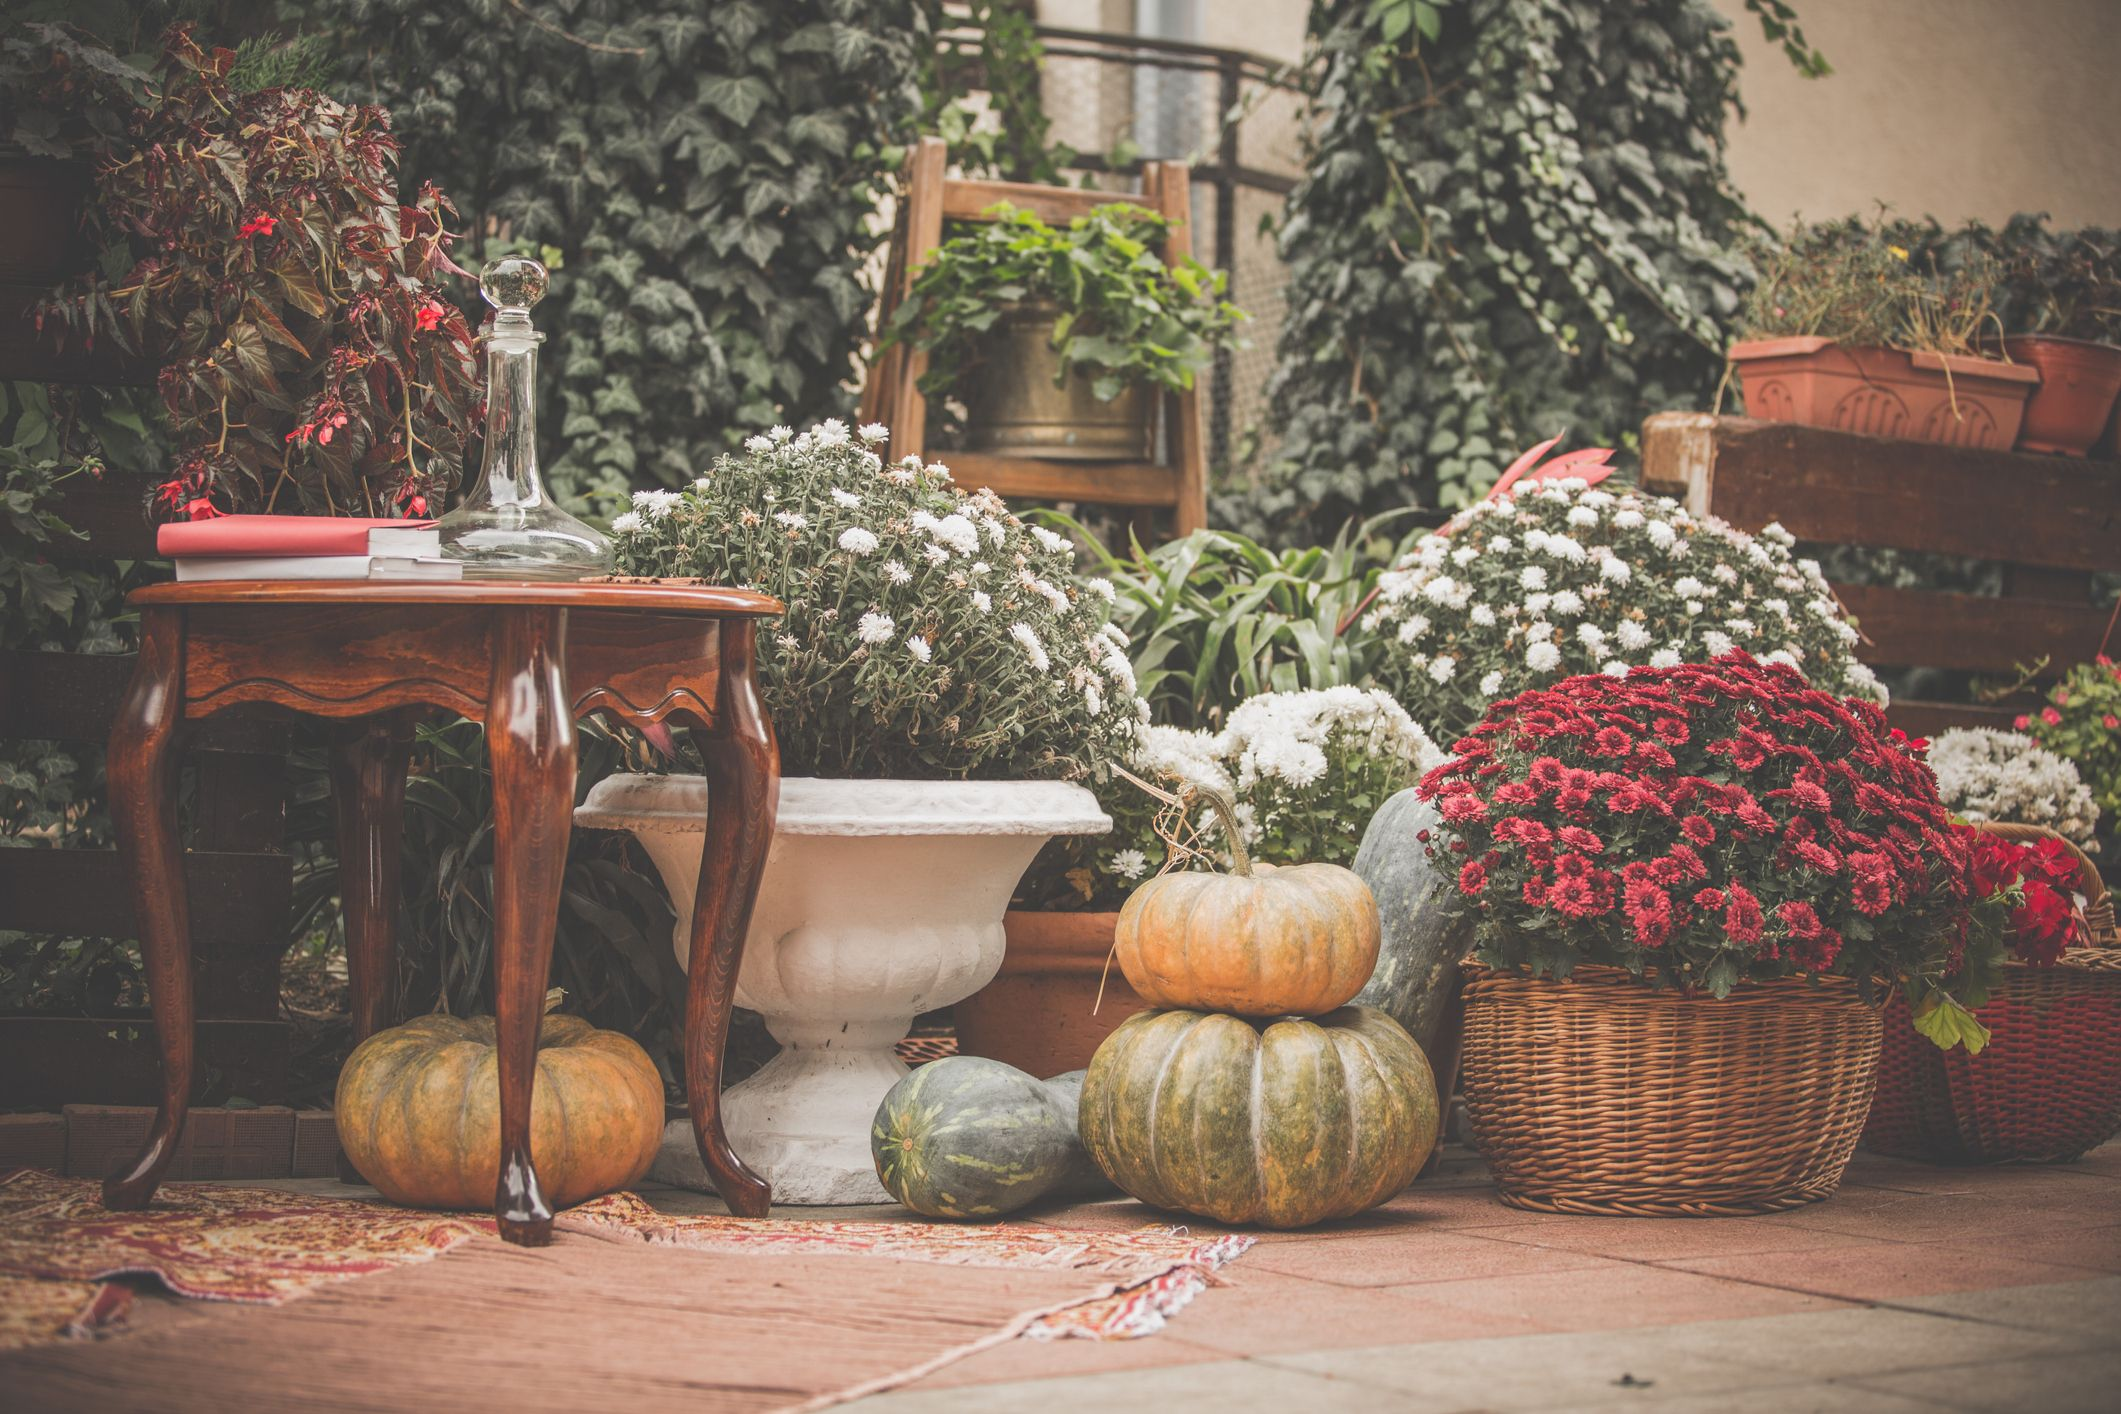 15 Stylish Fall Decorating Ideas How To Decorate Your Home For Autumn 2020